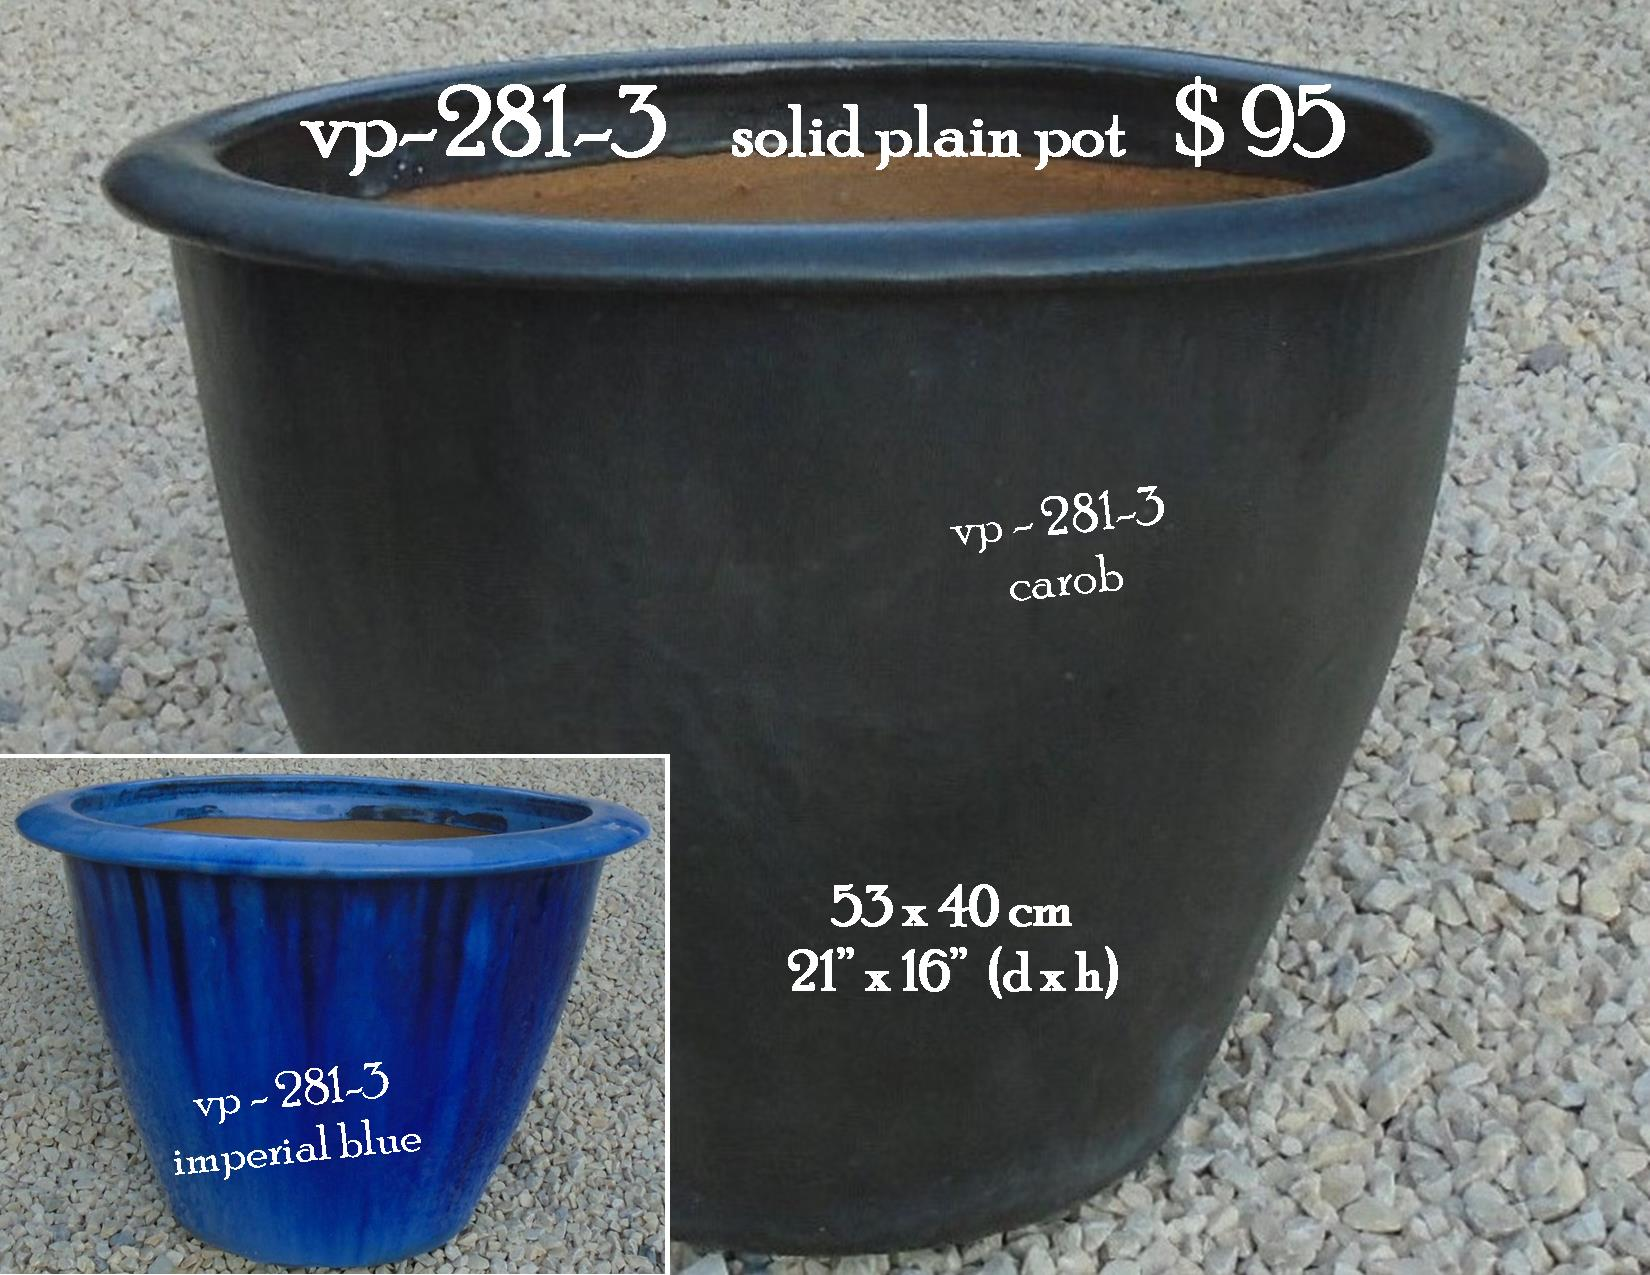 vp-281-3    solid plain pot